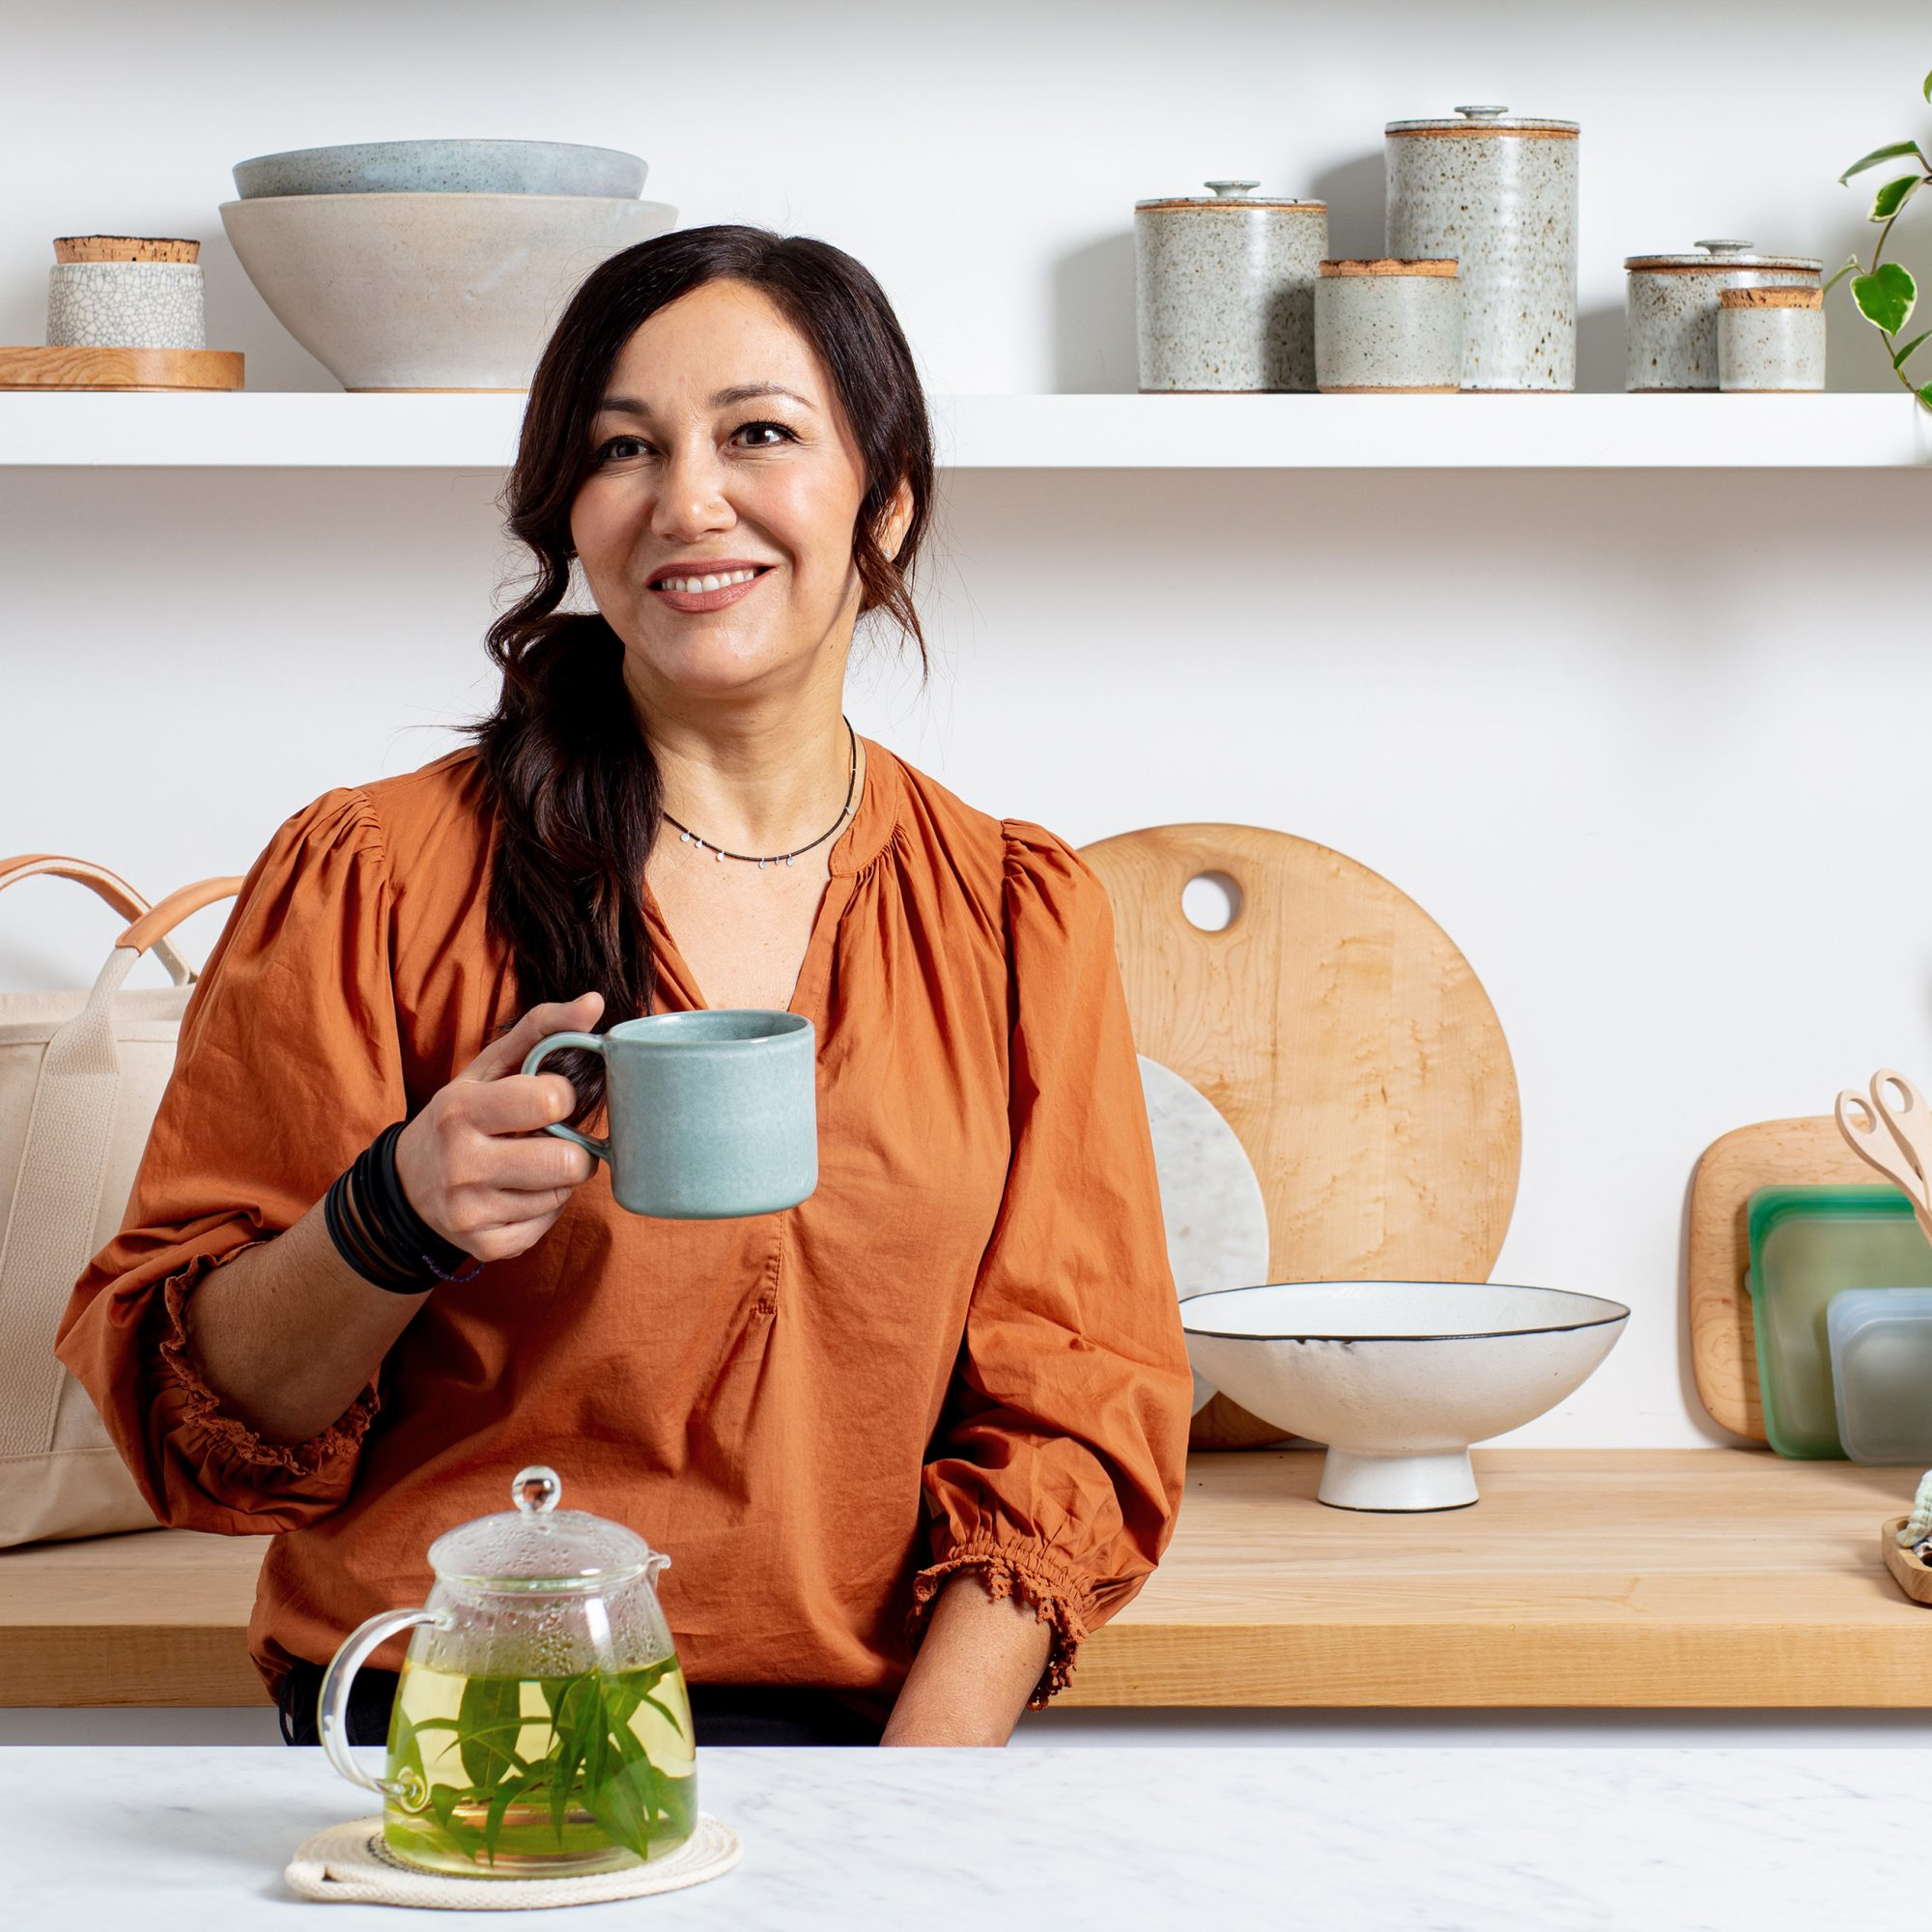 Stasher Bags founder Kat Nouri holding mug of tea